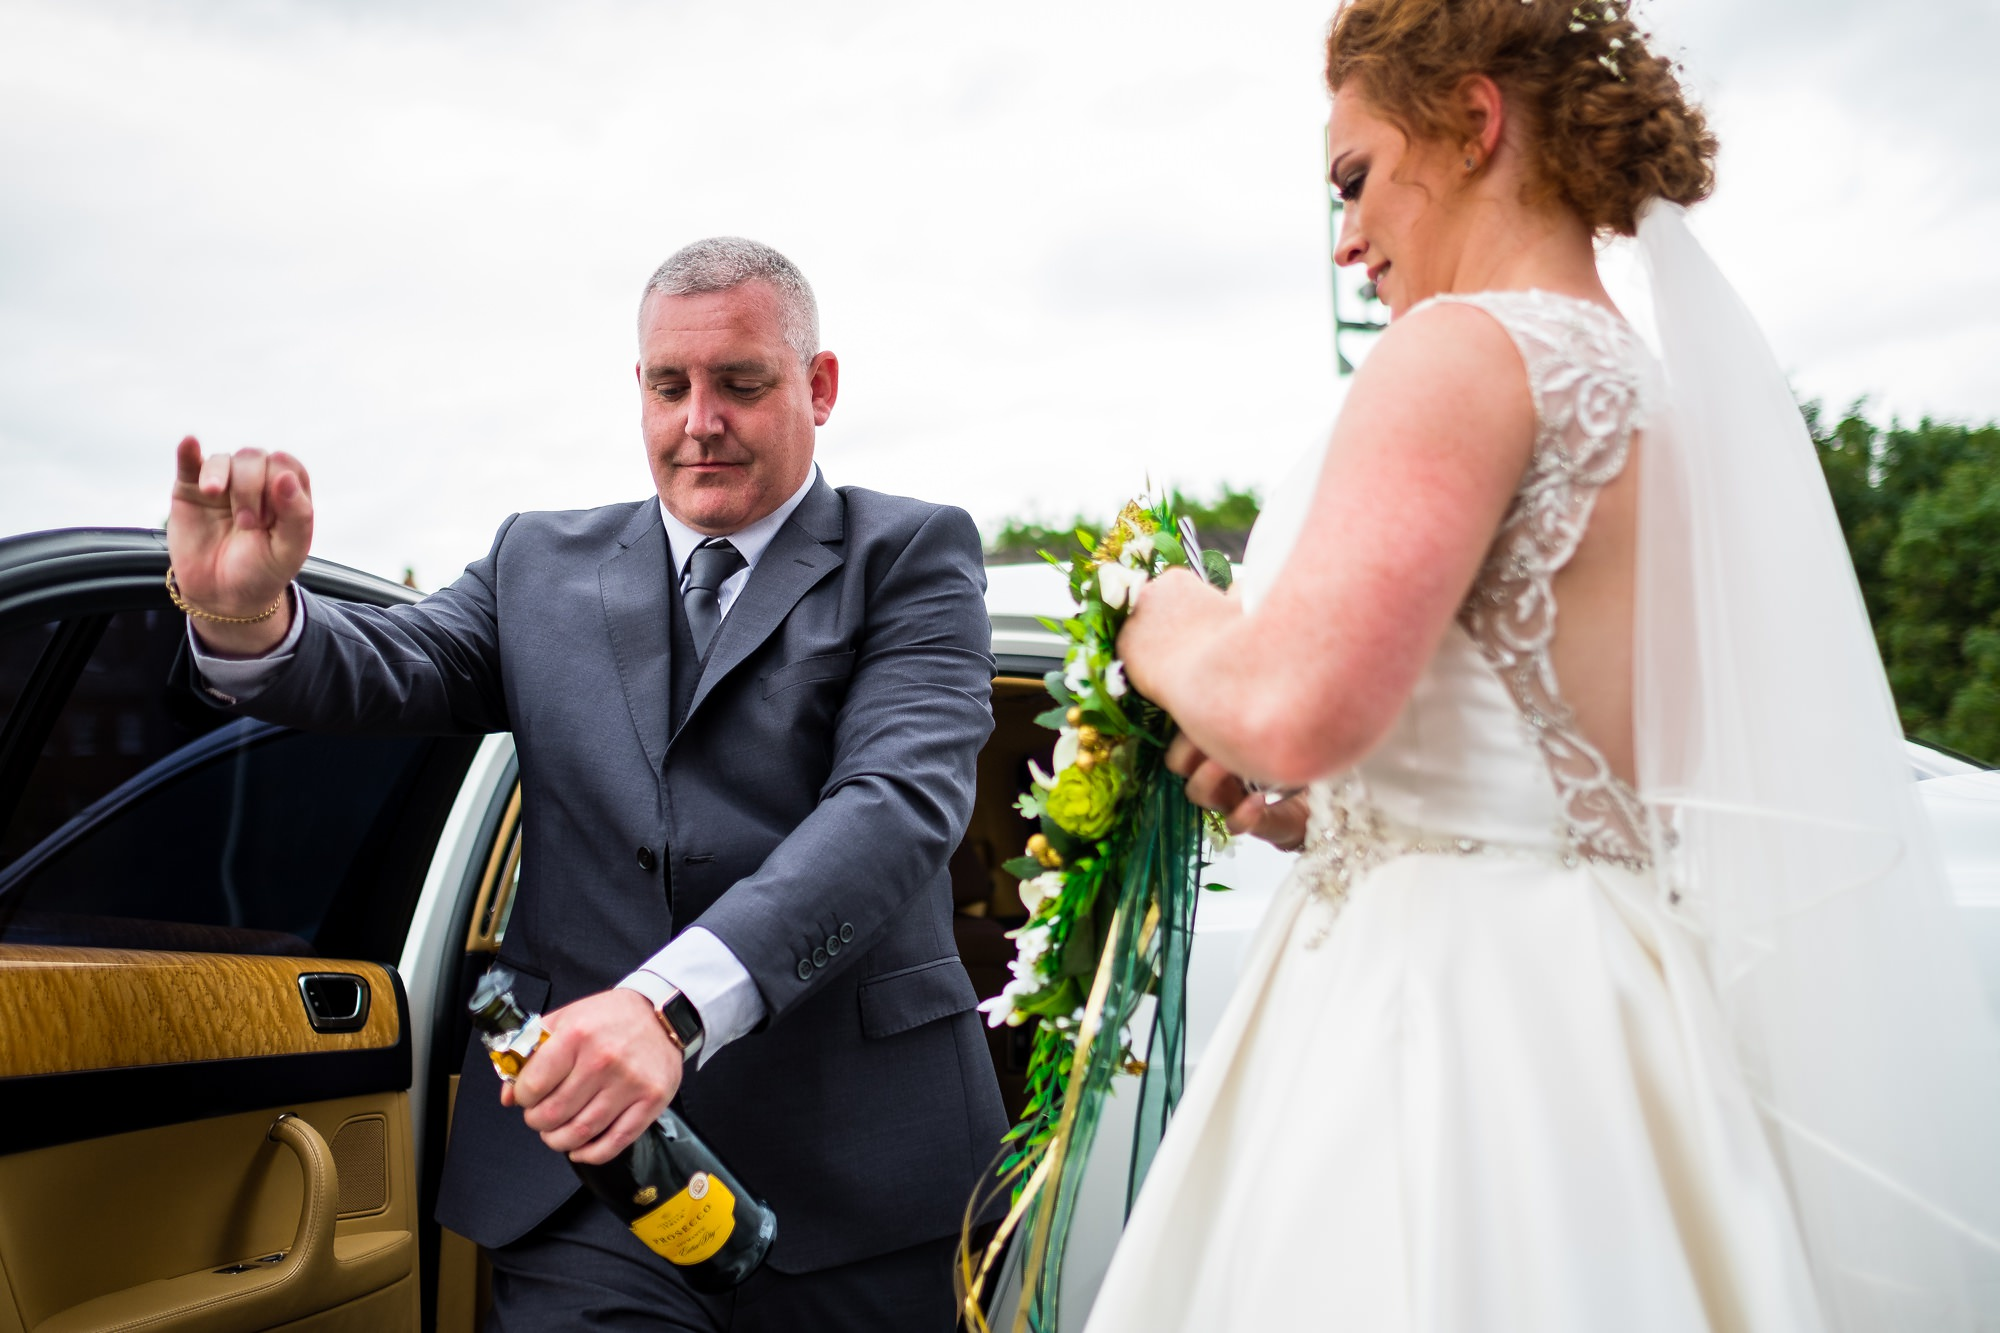 bride waiting for bottle to open before getting into wedding car